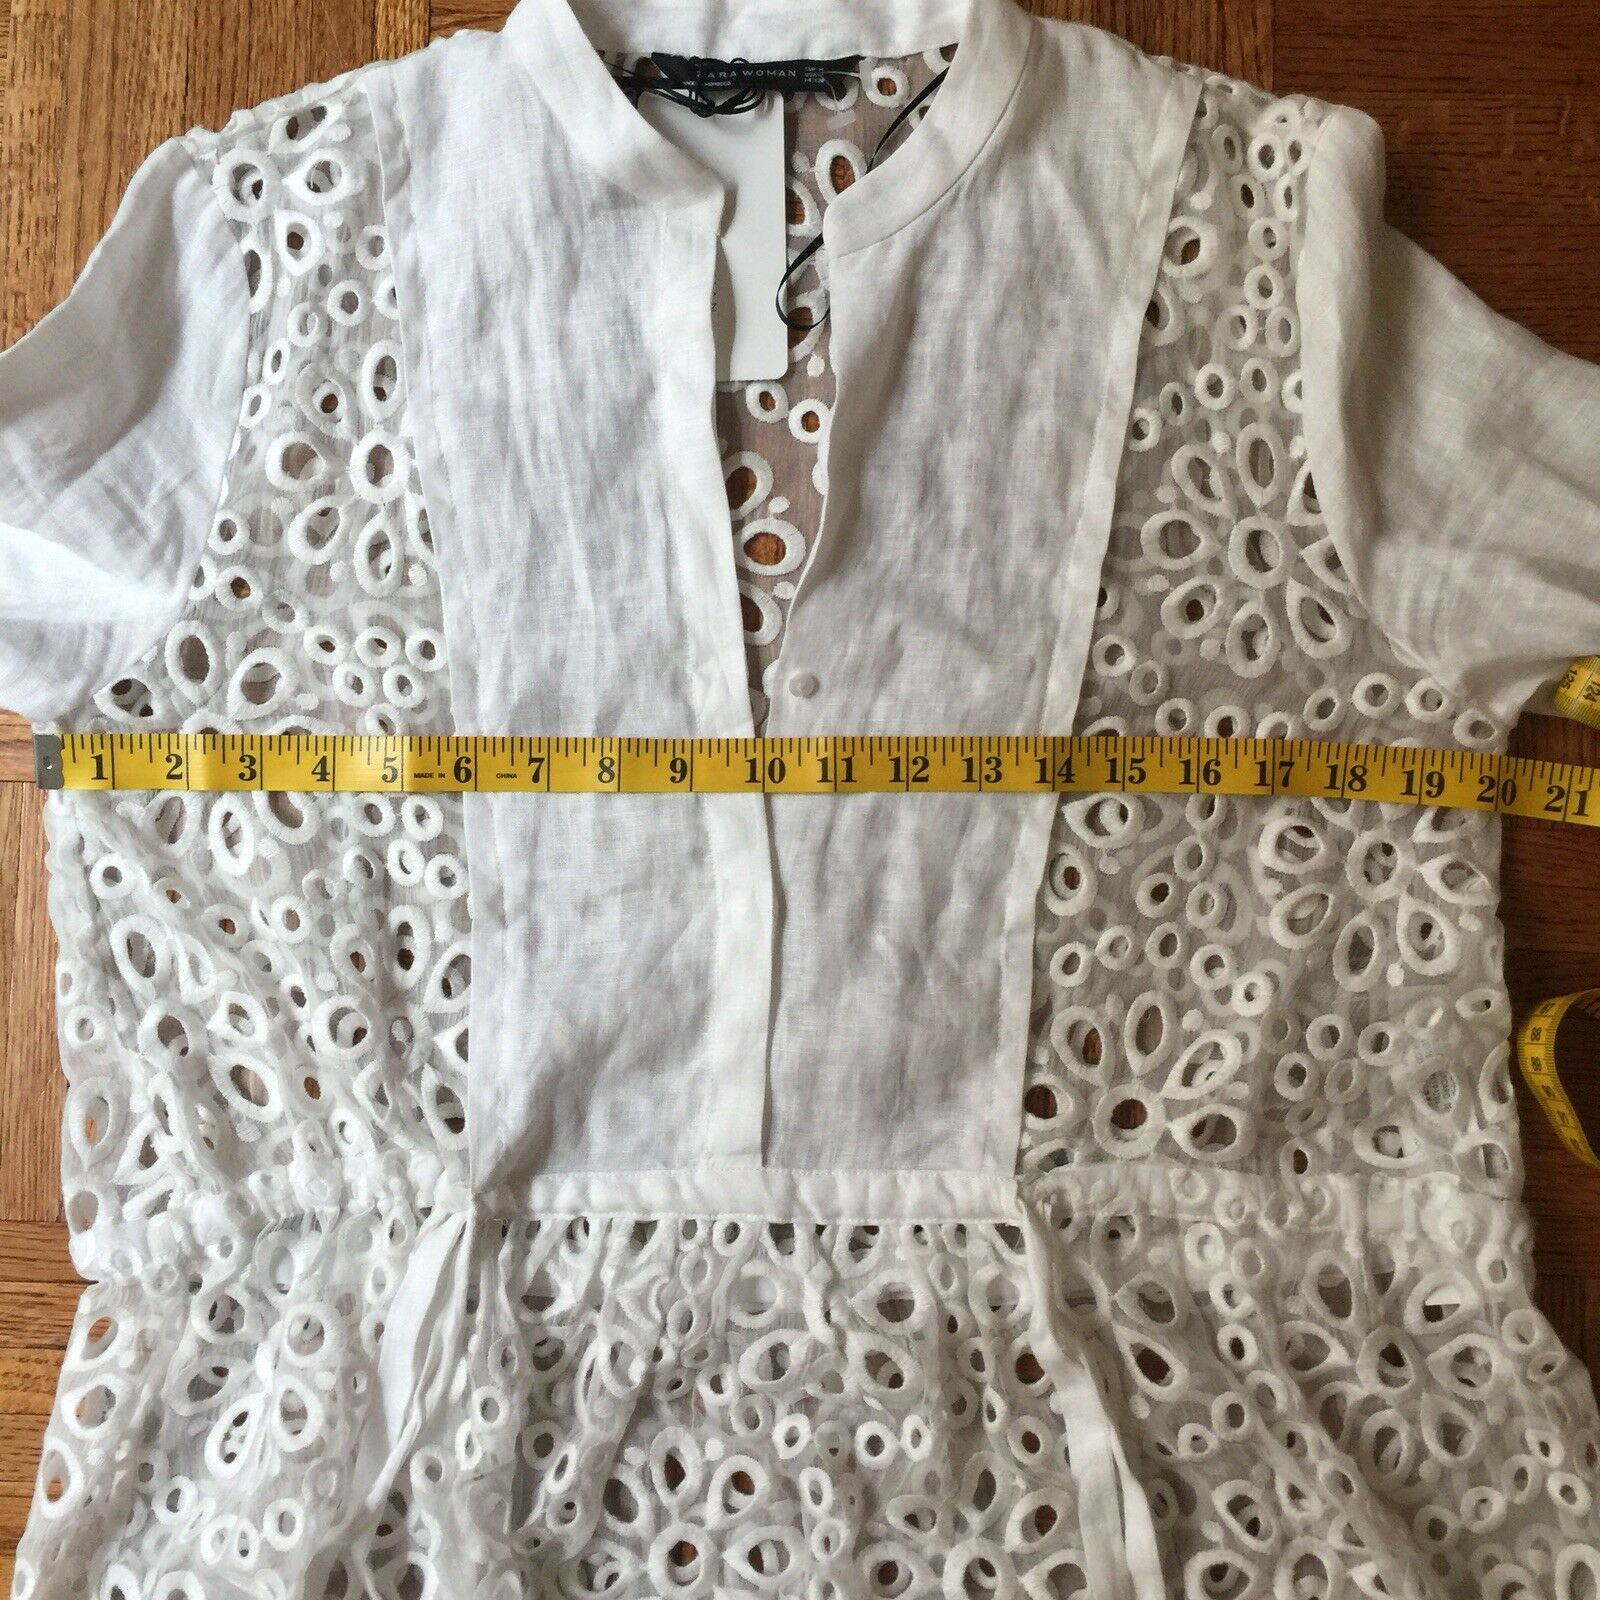 c9f665c8e4 Zara White Eyelet Dress Beach Cover Up NWT! SOLD OUT!! | eBay